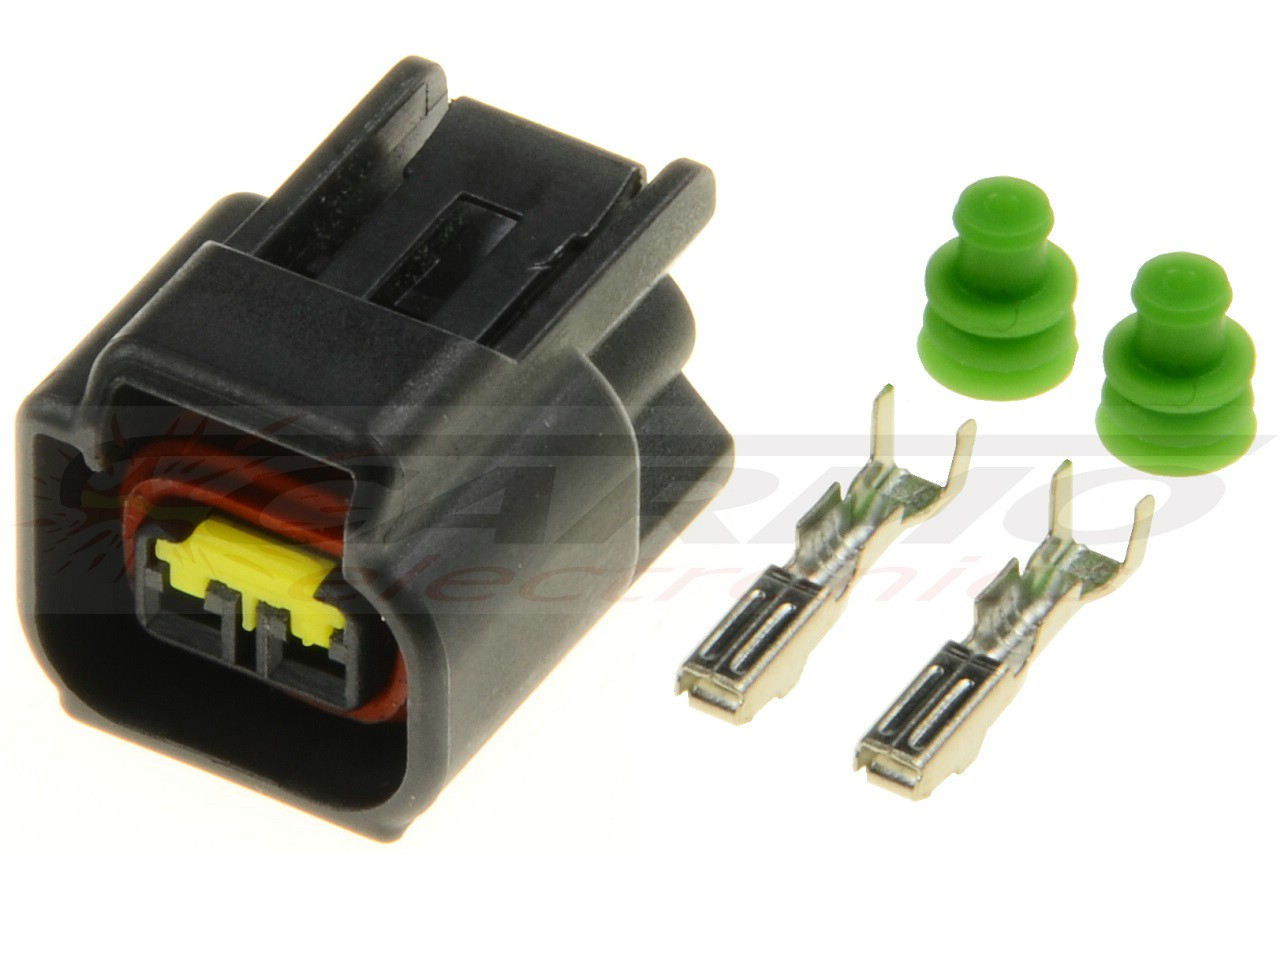 2 way Nippon Denso ignition coil connector plug (129700, 21171) [2